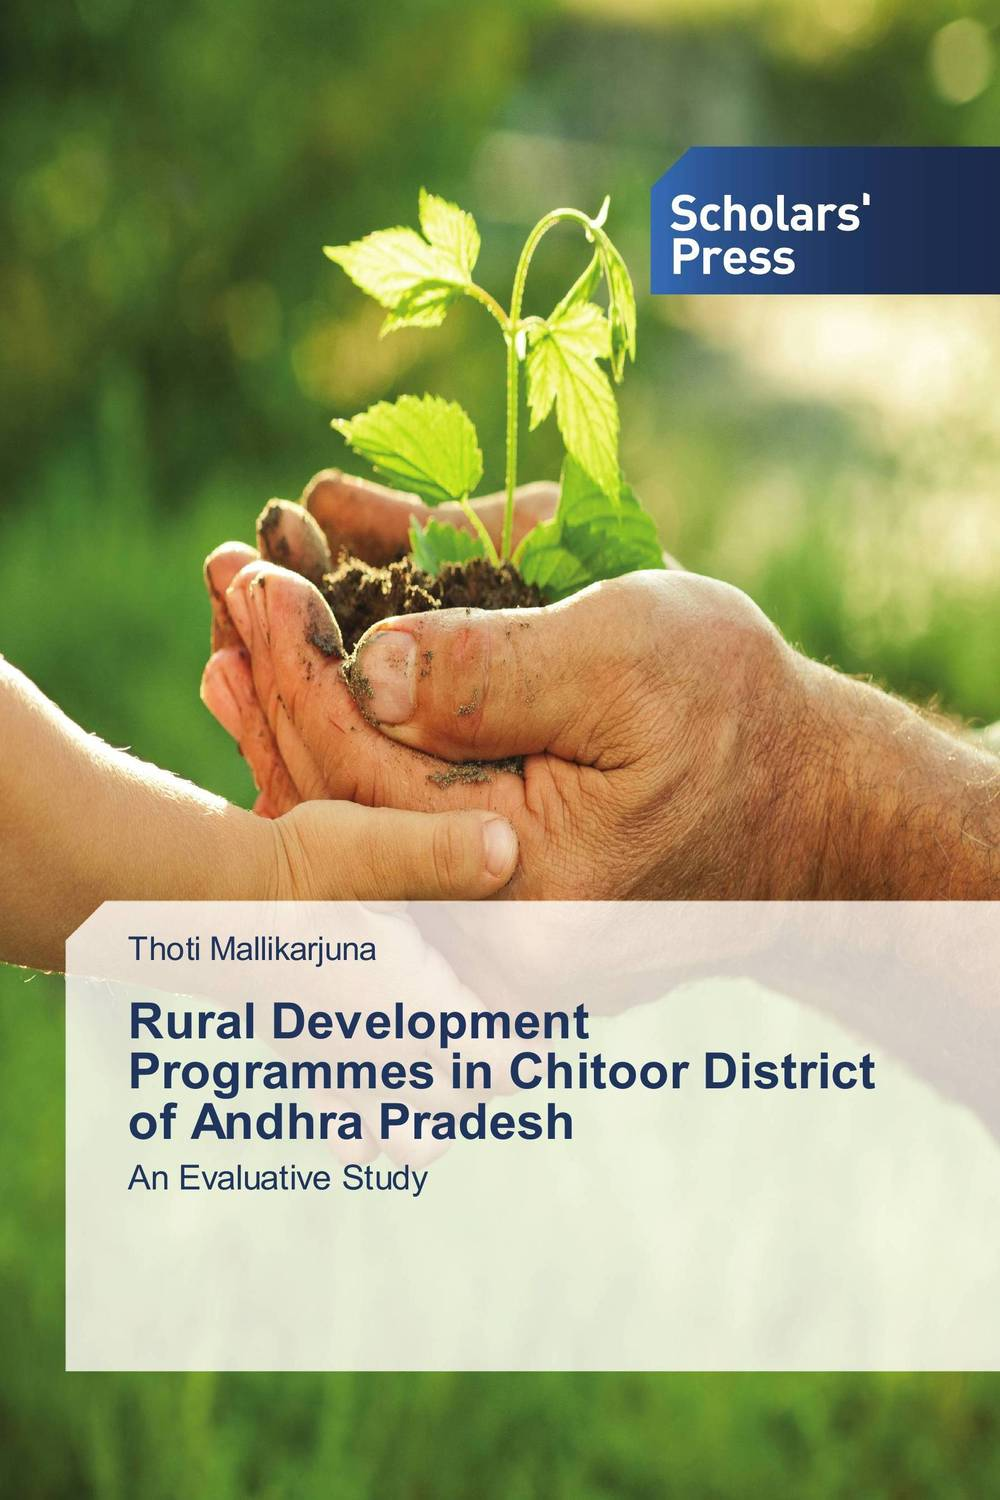 Rural Development Programmes in Chitoor District of Andhra Pradesh poverty and development in rural india